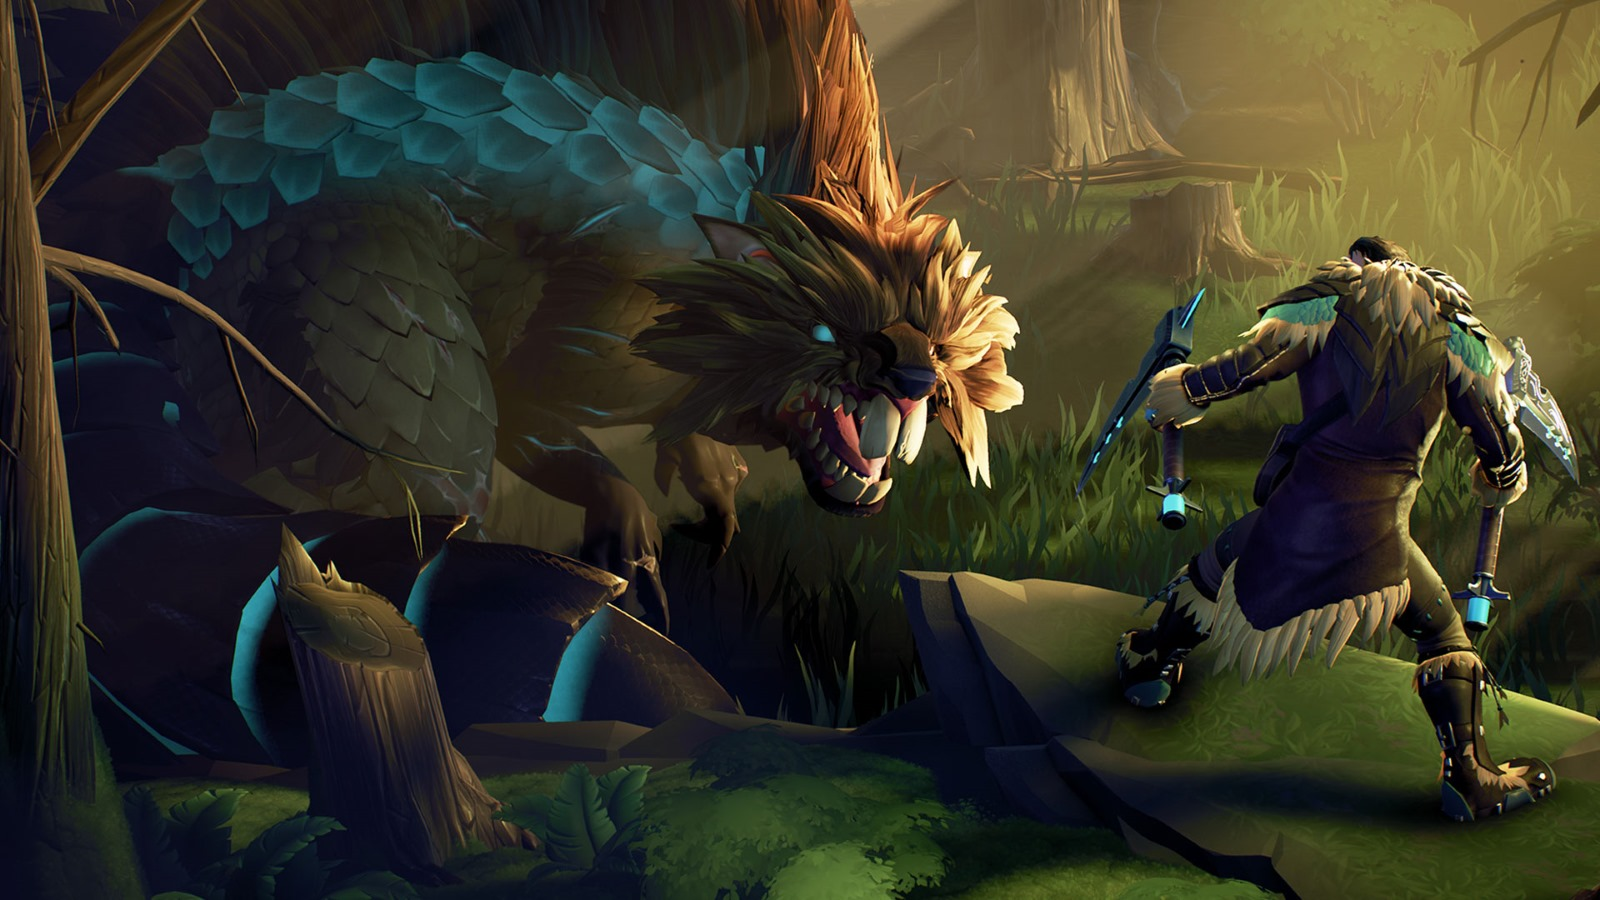 Dauntless launches on the Epic Games Store, cross-platform